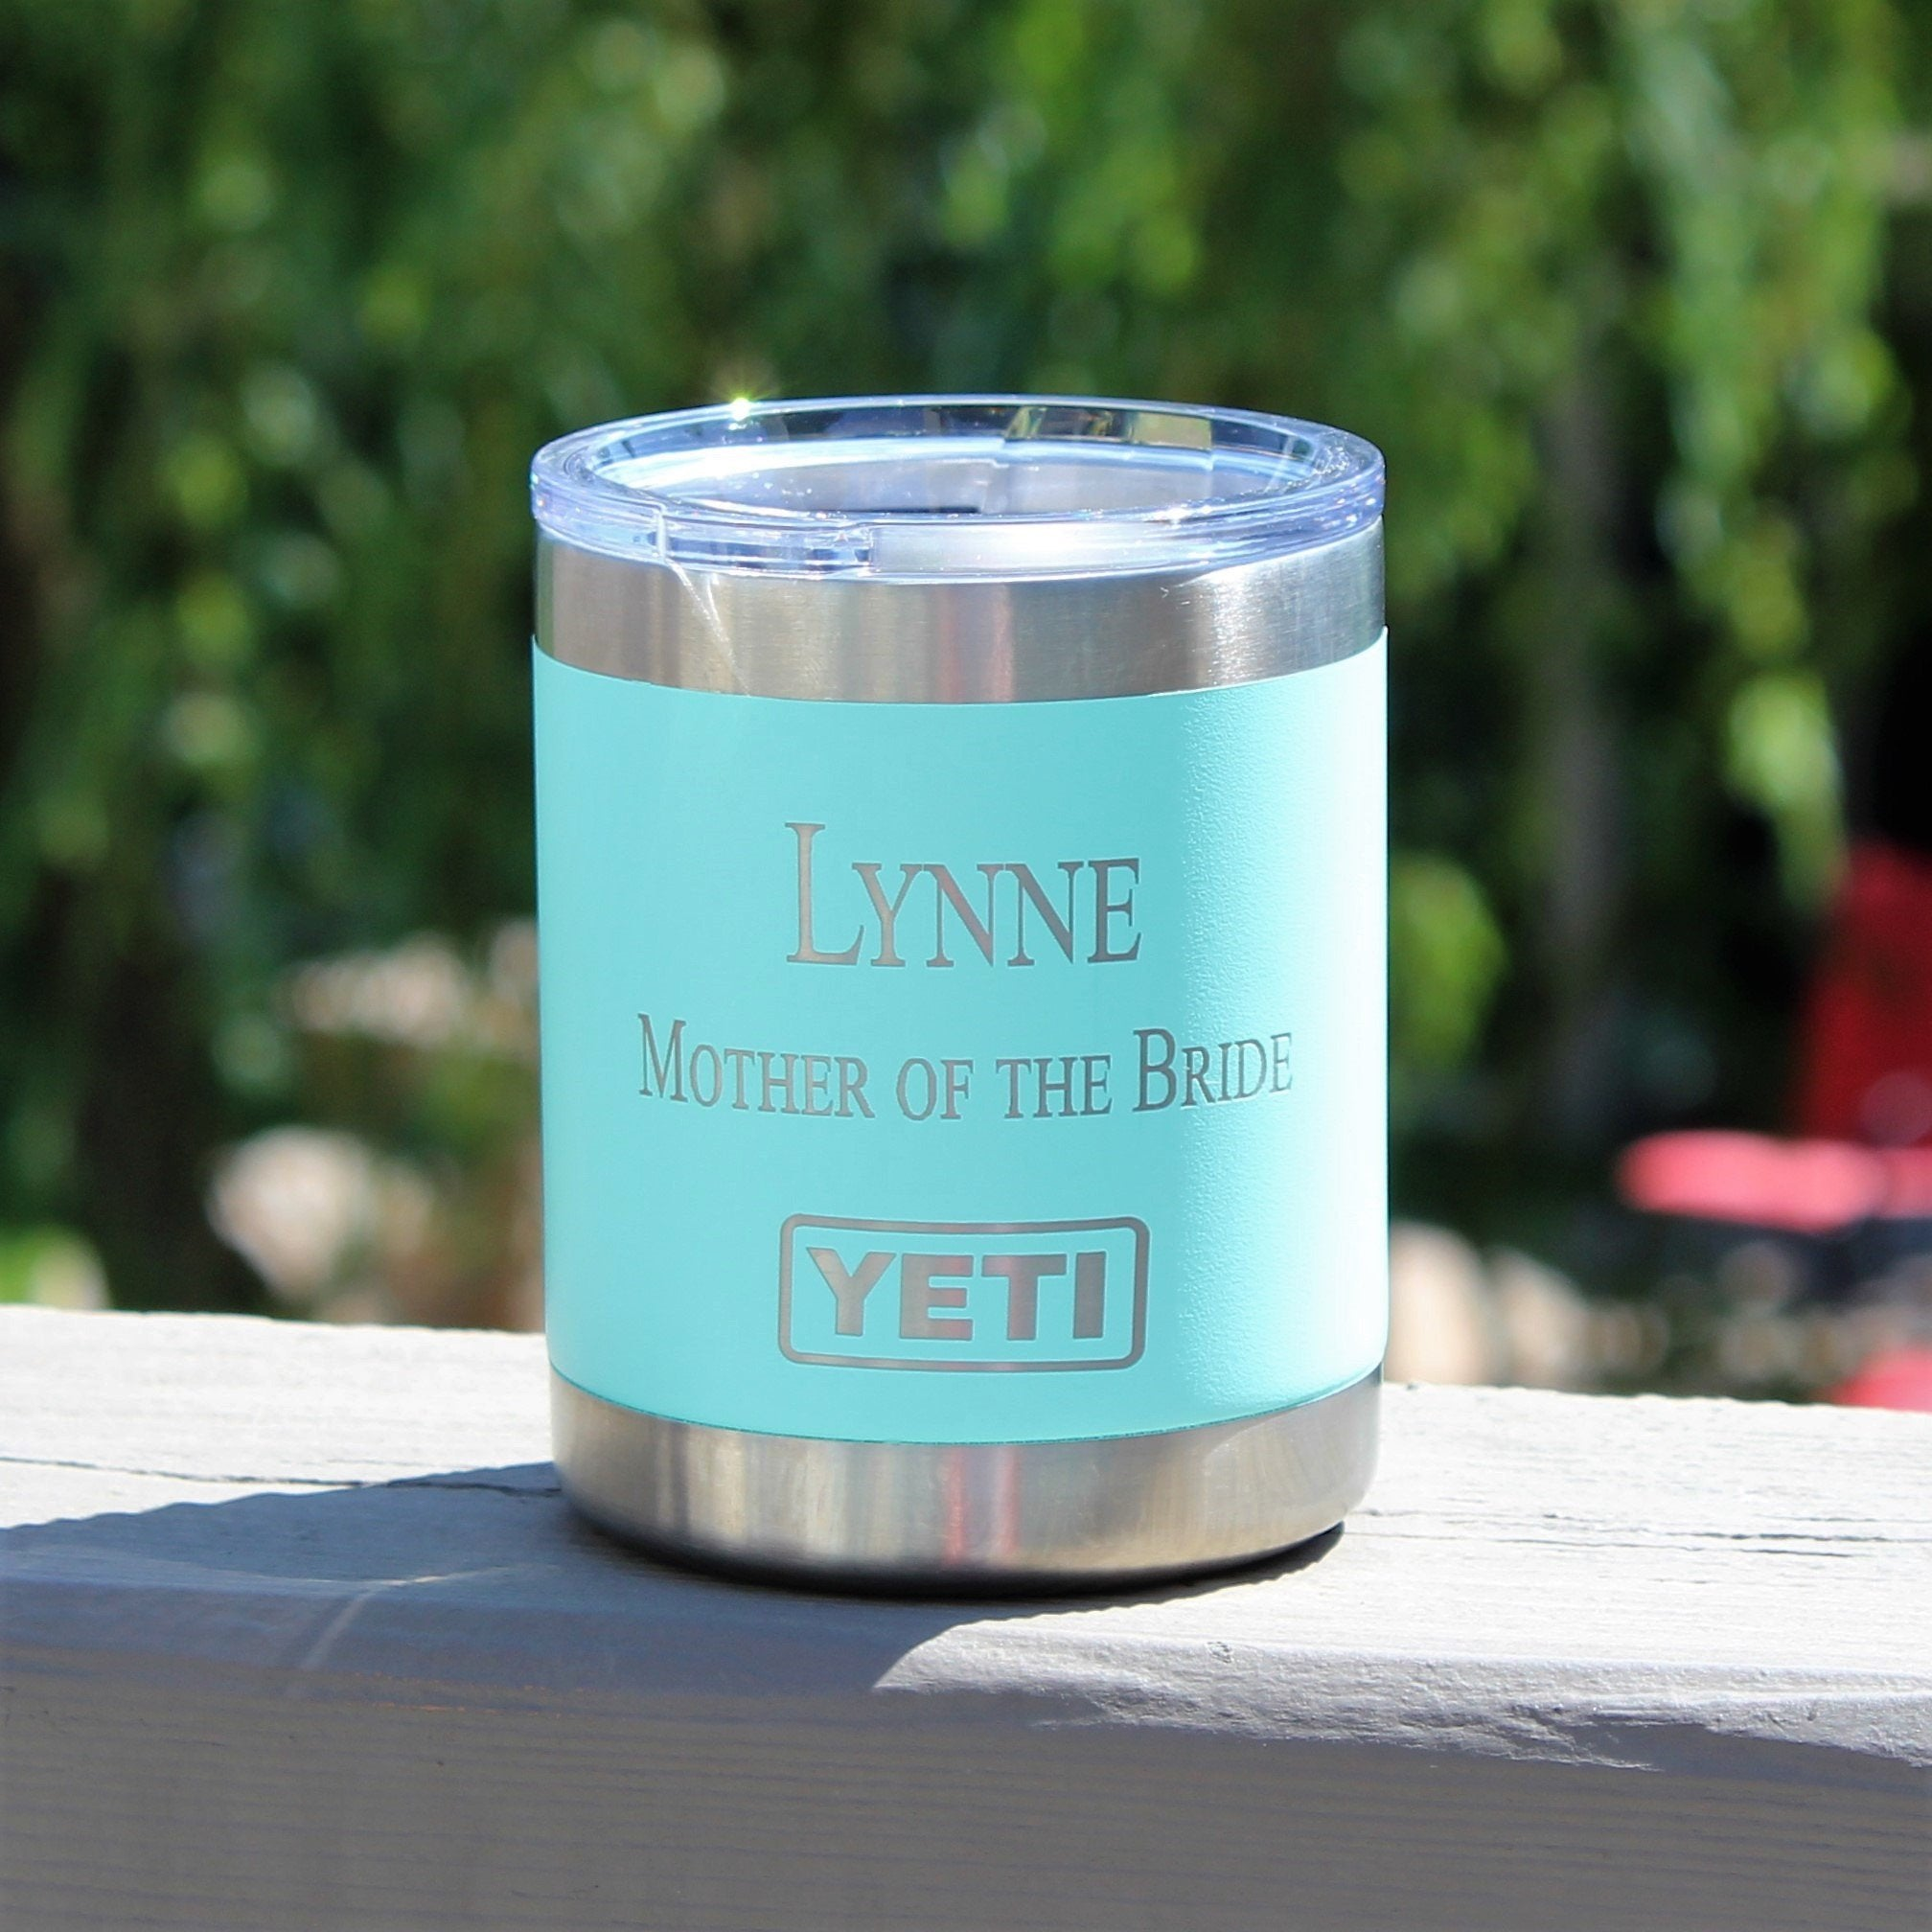 Personalized Black Yeti Rambler Tumbler Lowball 10oz Stainless Steel Personalized Groomsmen Gifts Father S Day Dad Corporate Gift